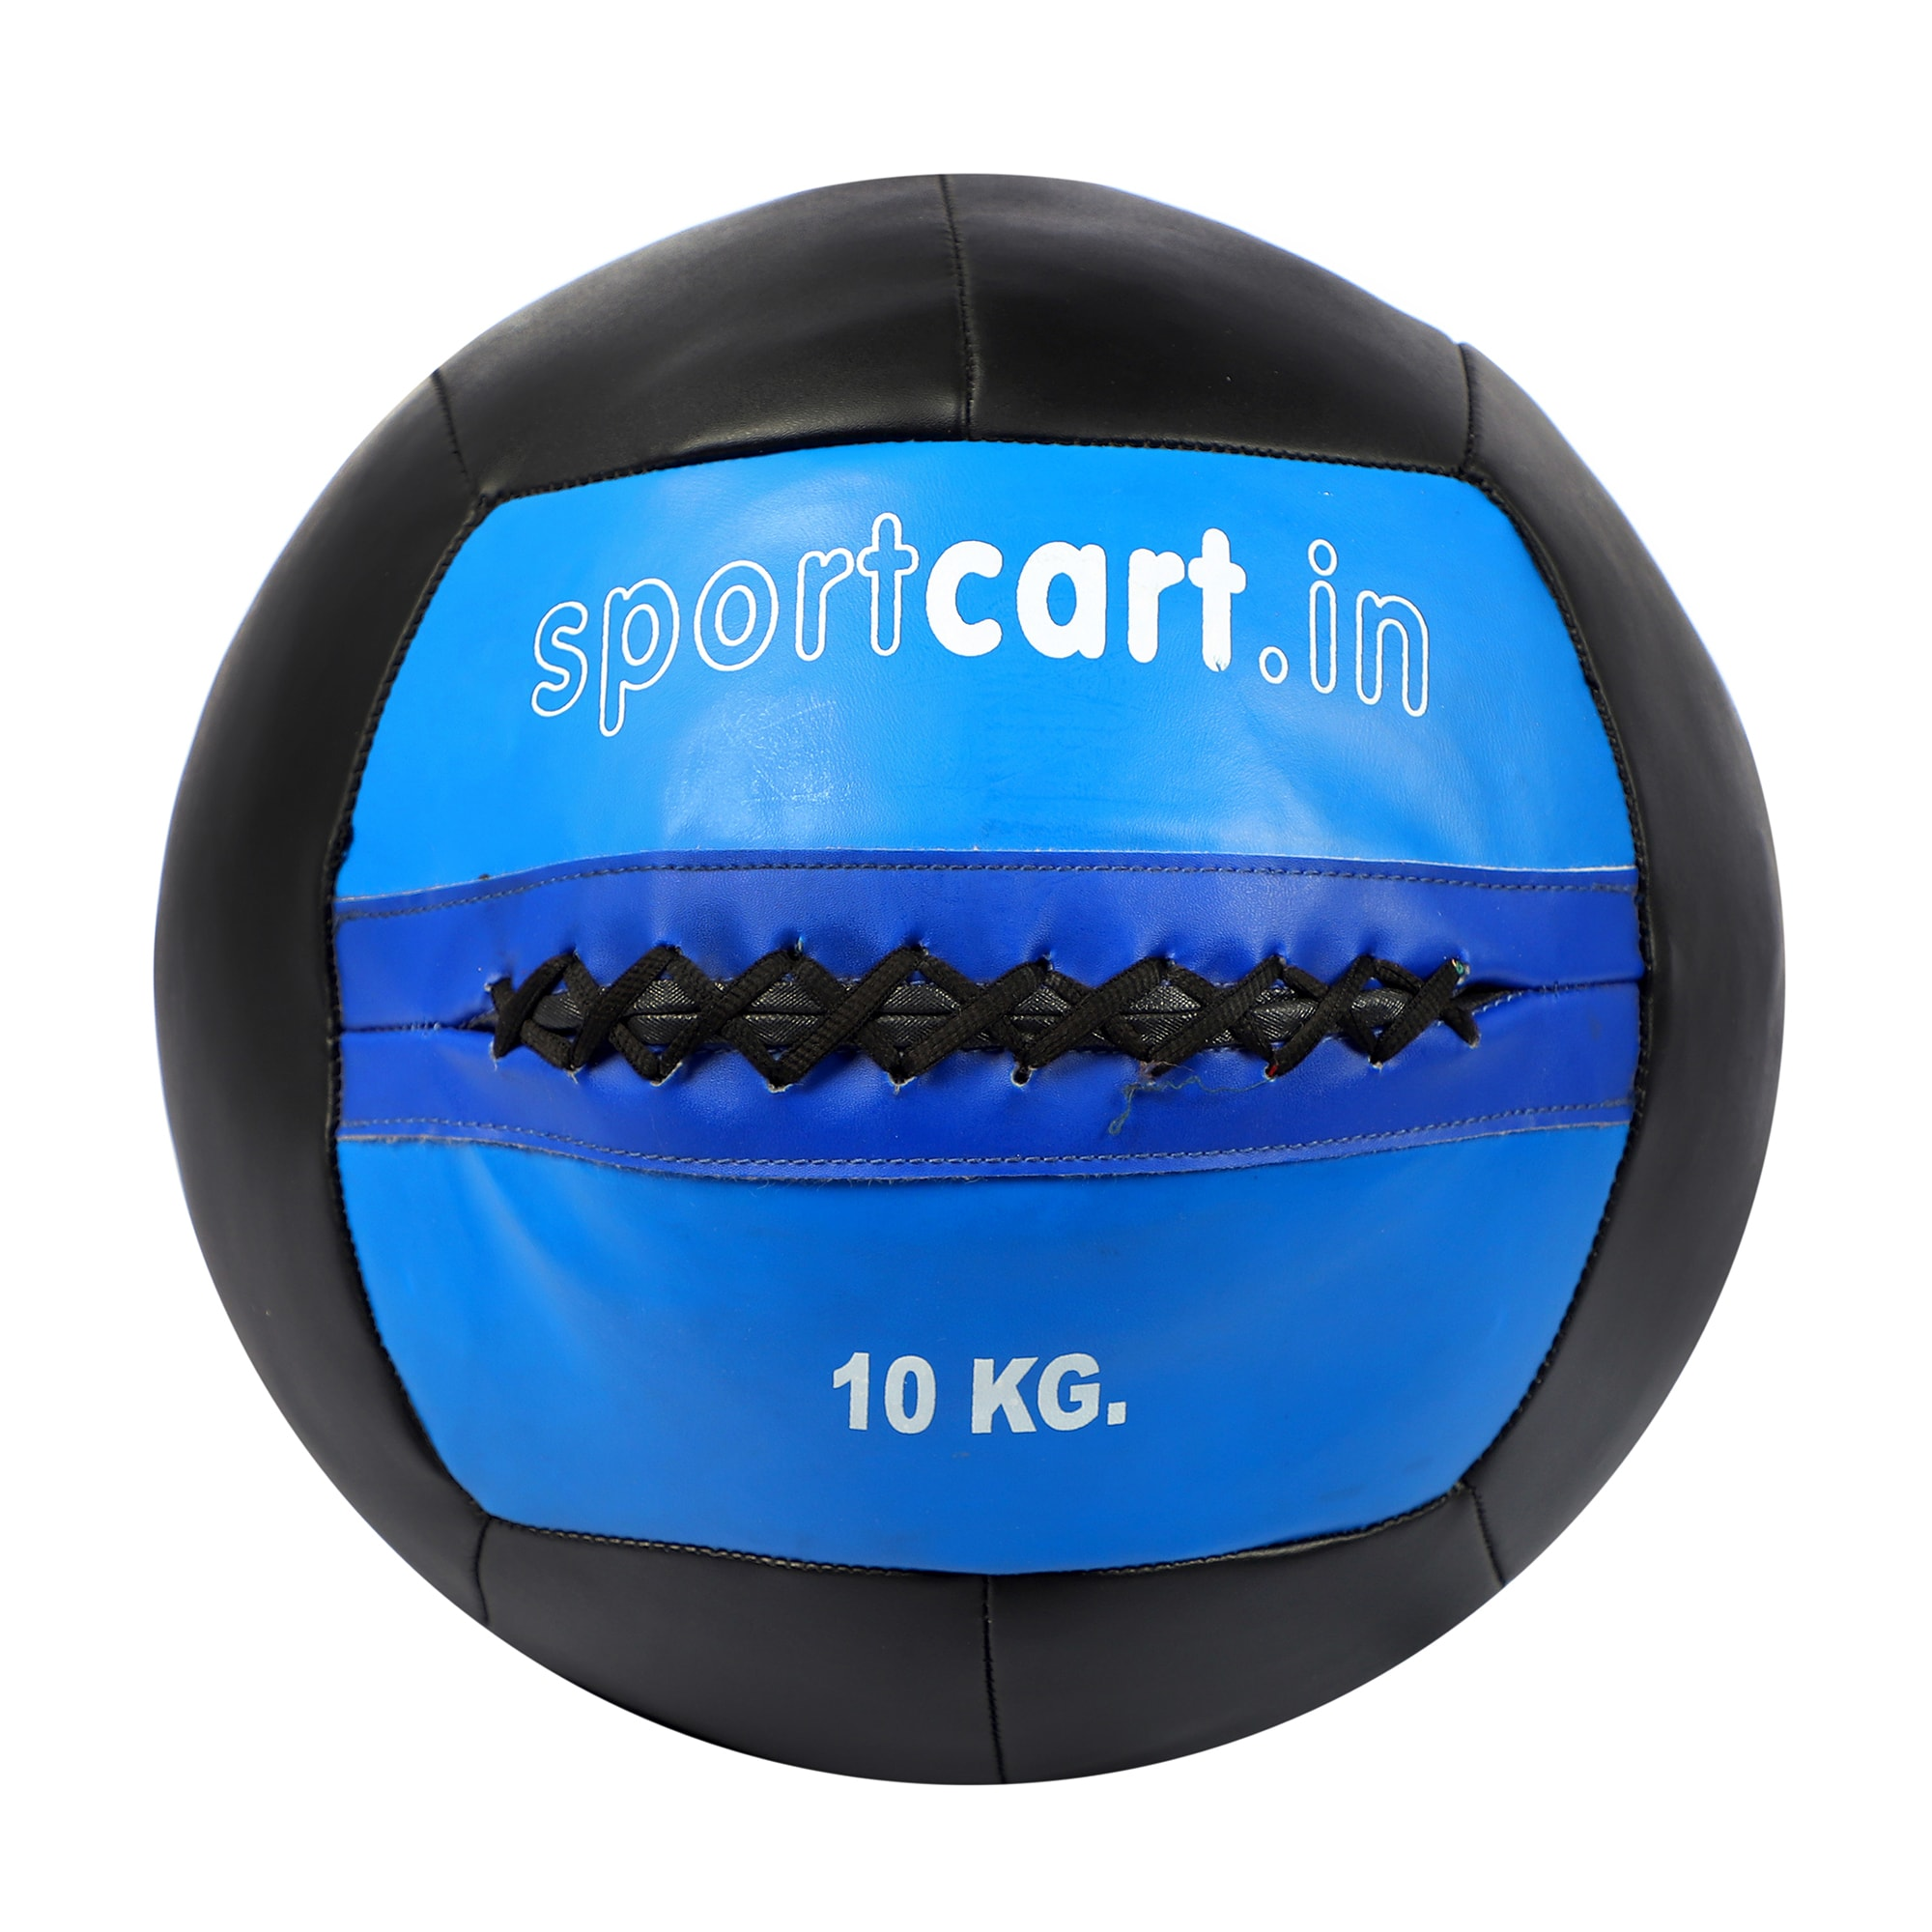 Sportcart.in Wall Ball - 10 Kg